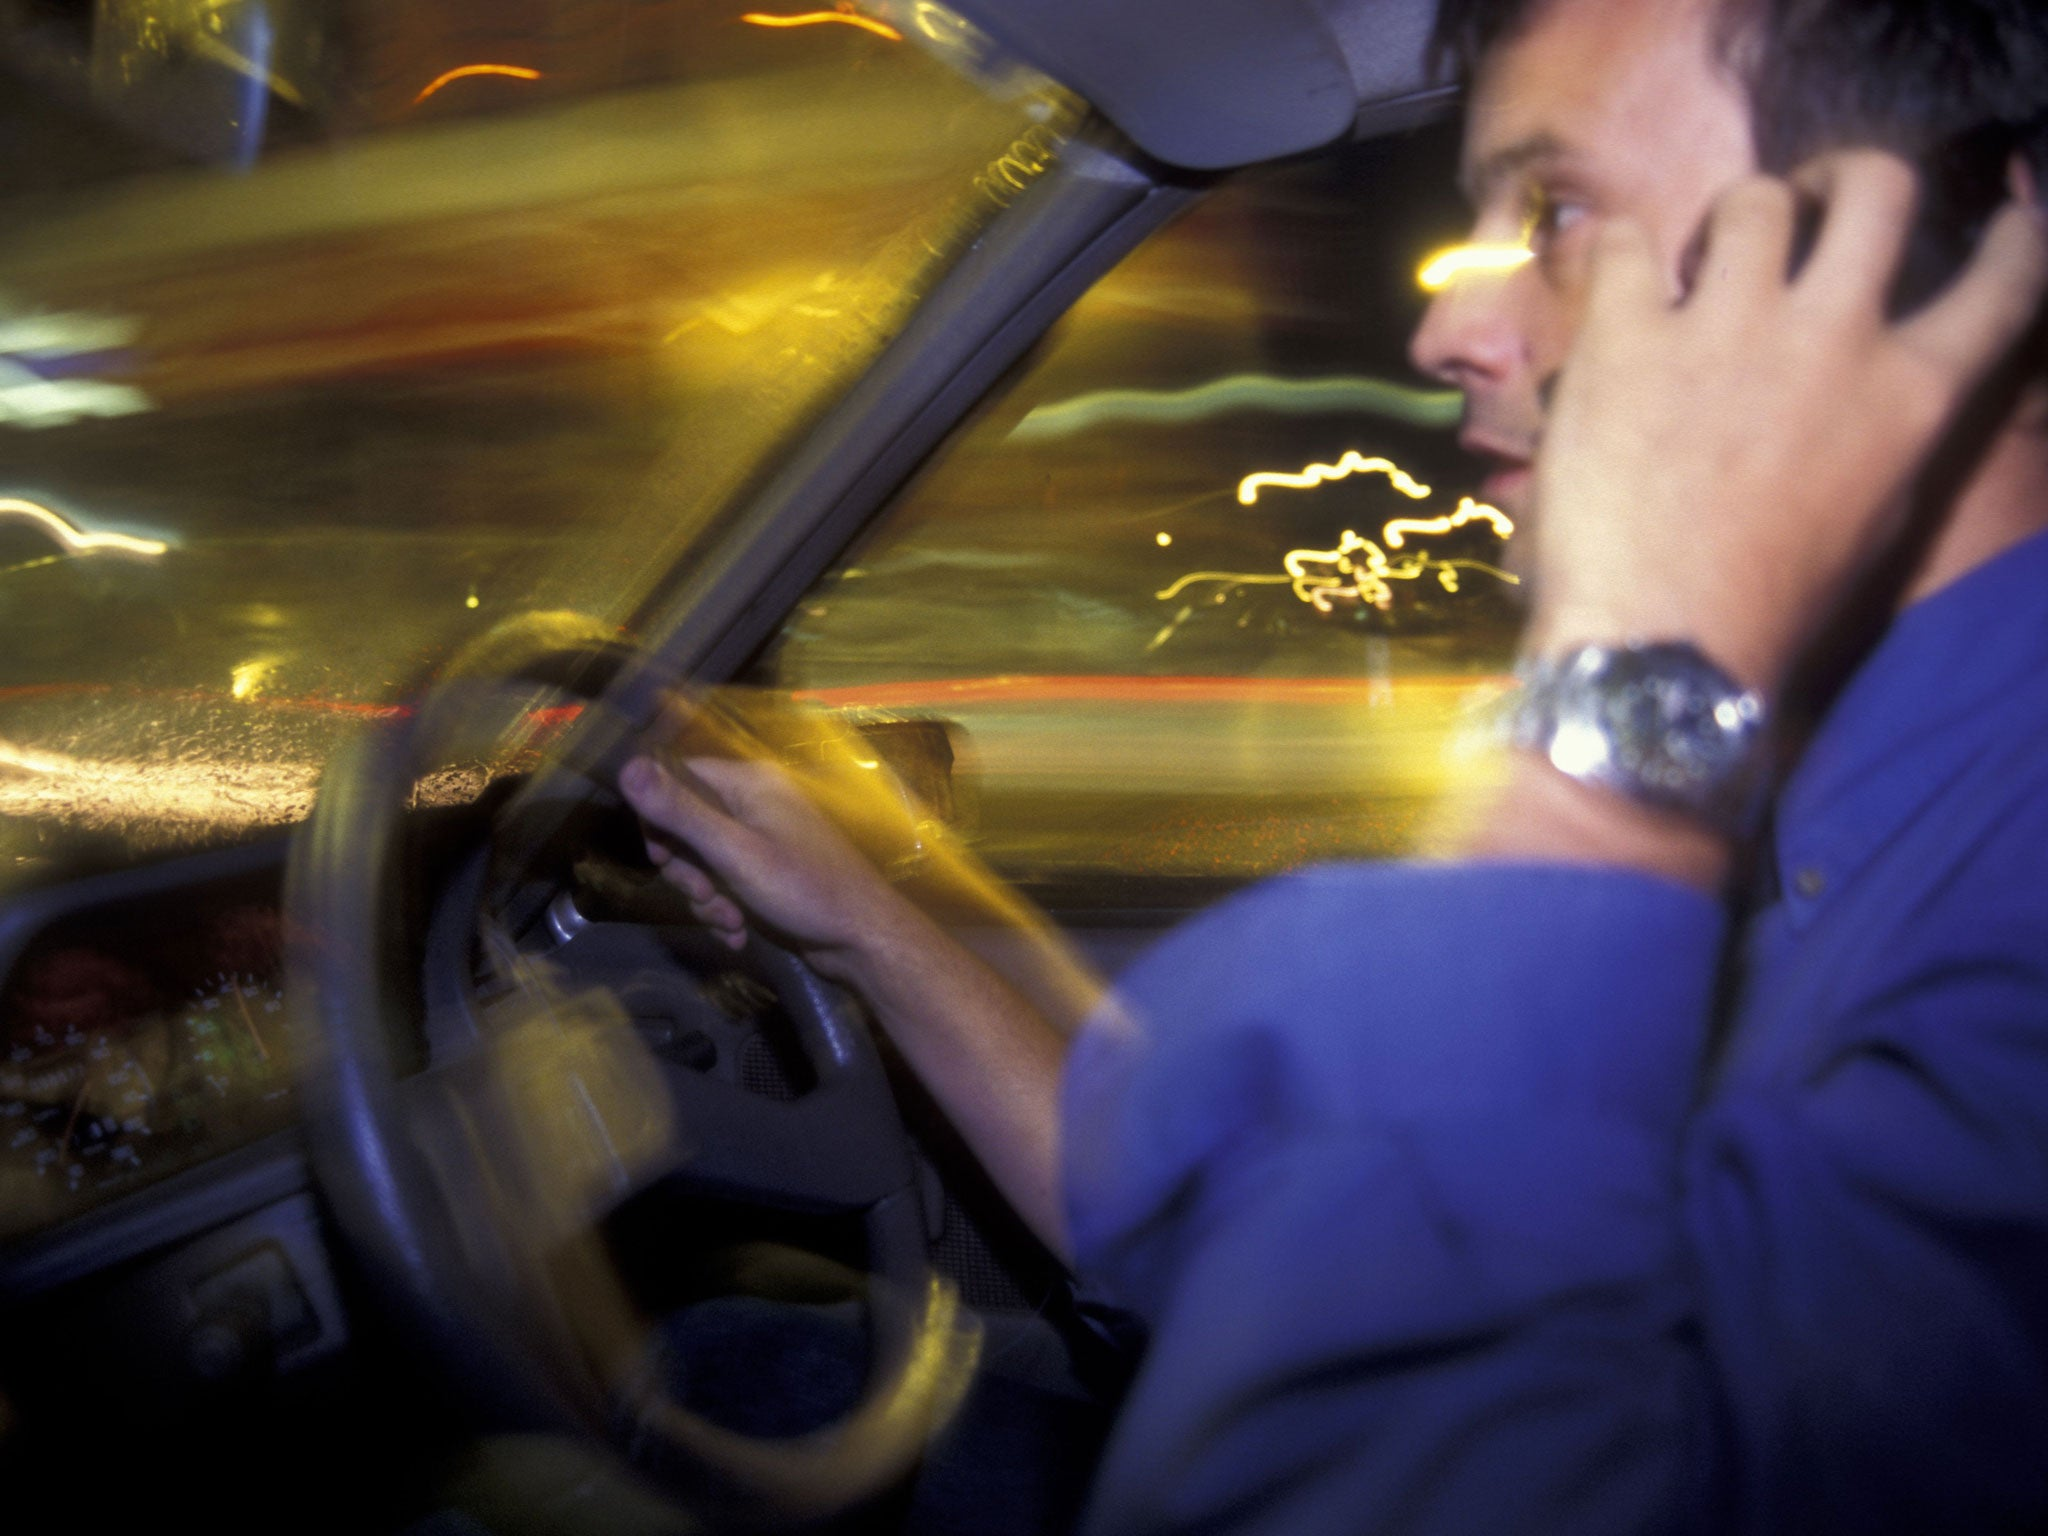 driving and talking on the phone essay Due to the lack of focus of the driver who is on the cell phone while driving, which causes recklessness and lower reaction time, the usage of a cell phone while driving should be illegal or something like that i need more time to come up will a good one i pretty much pulled that one out of my then just do some research and use.